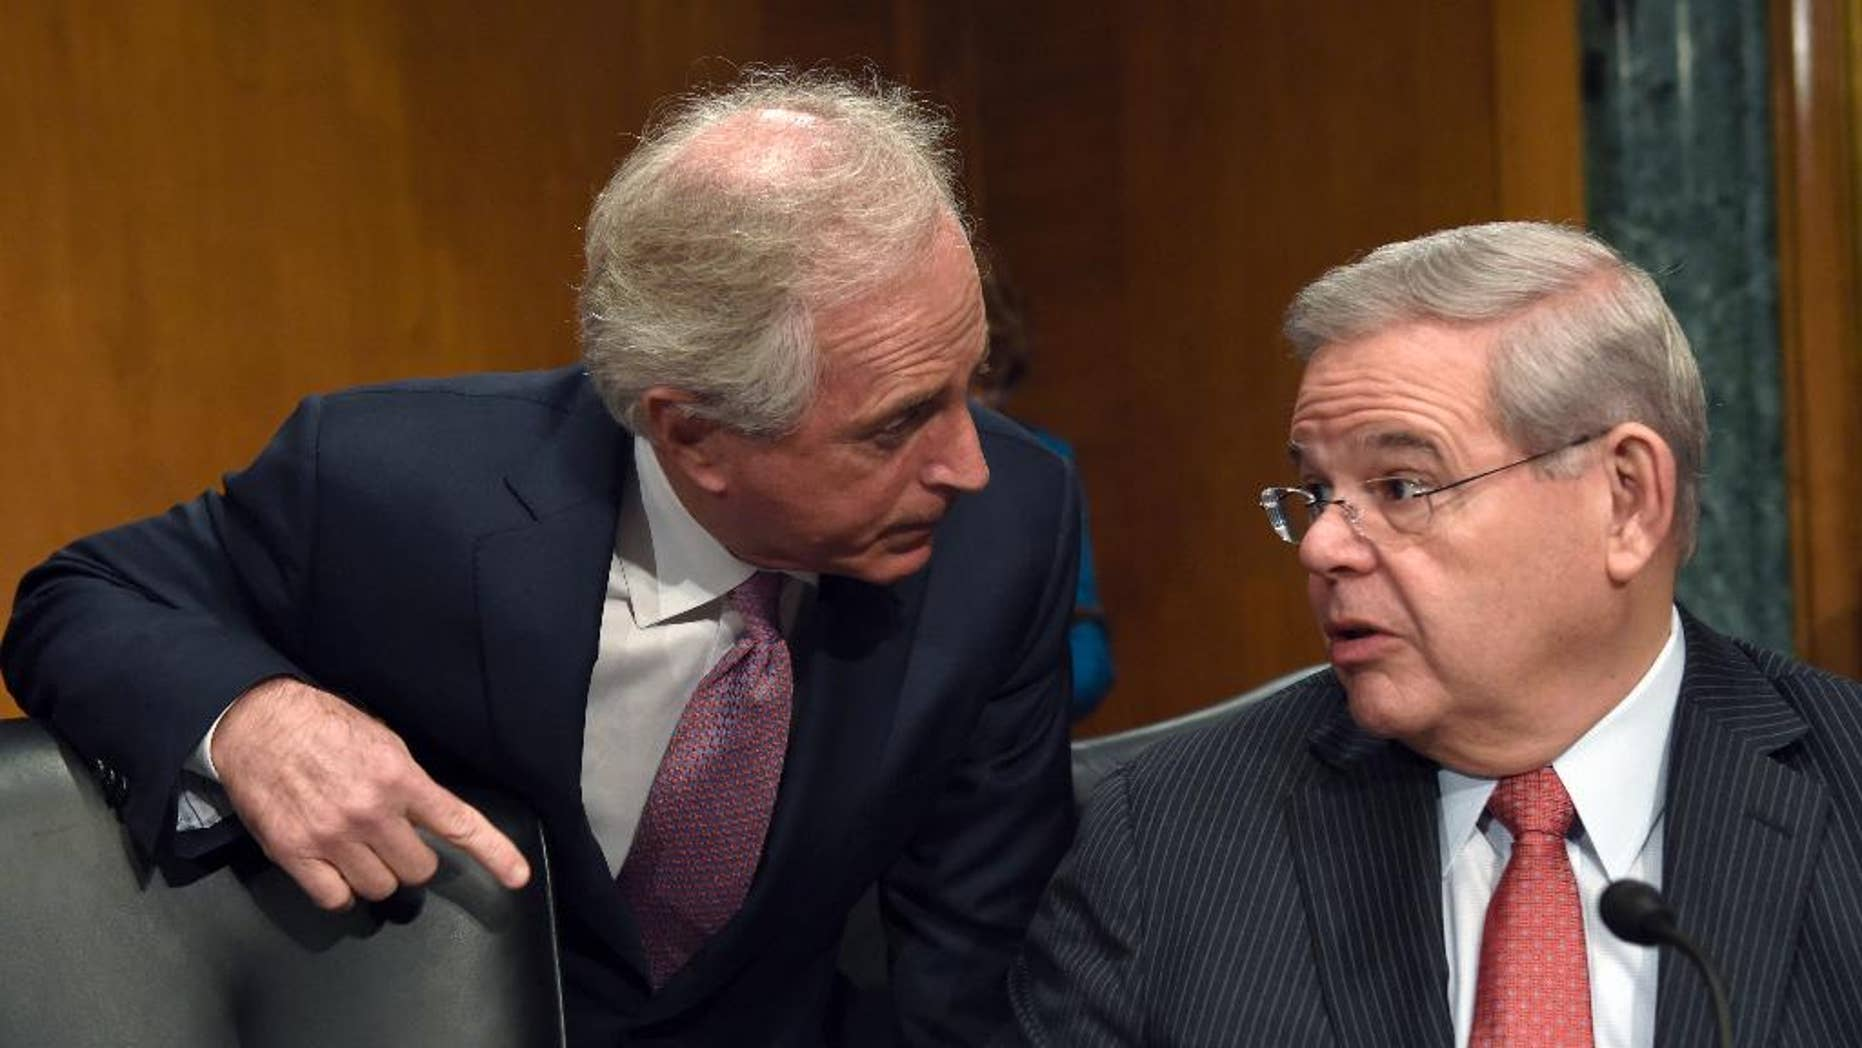 FILE - In this Jan. 27, 2015 file photo, Senate Foreign Relations Committee Chairman Sen. Bob Corker, R-Tenn., left, talks with the committee's tanking member Sen. Robert Menendez, D-N.J. on Capitol Hill in Washington. A bill calling for Congress to have a say about an emerging nuclear agreement with Iran has turned into a tug of war on Capitol Hill with Republicans trying to raise the bar so high that a final deal might be impossible and Democrats aiming to give the White House more room to negotiate with Tehran. Democratic and GOP senators are considering more than 50 amendments to a controversial bill introduced by Corker and Menendez. The bill would restrict Obama's ability to ease sanctions against Iran without congressional approval.(AP Photo/Susan Walsh, File)